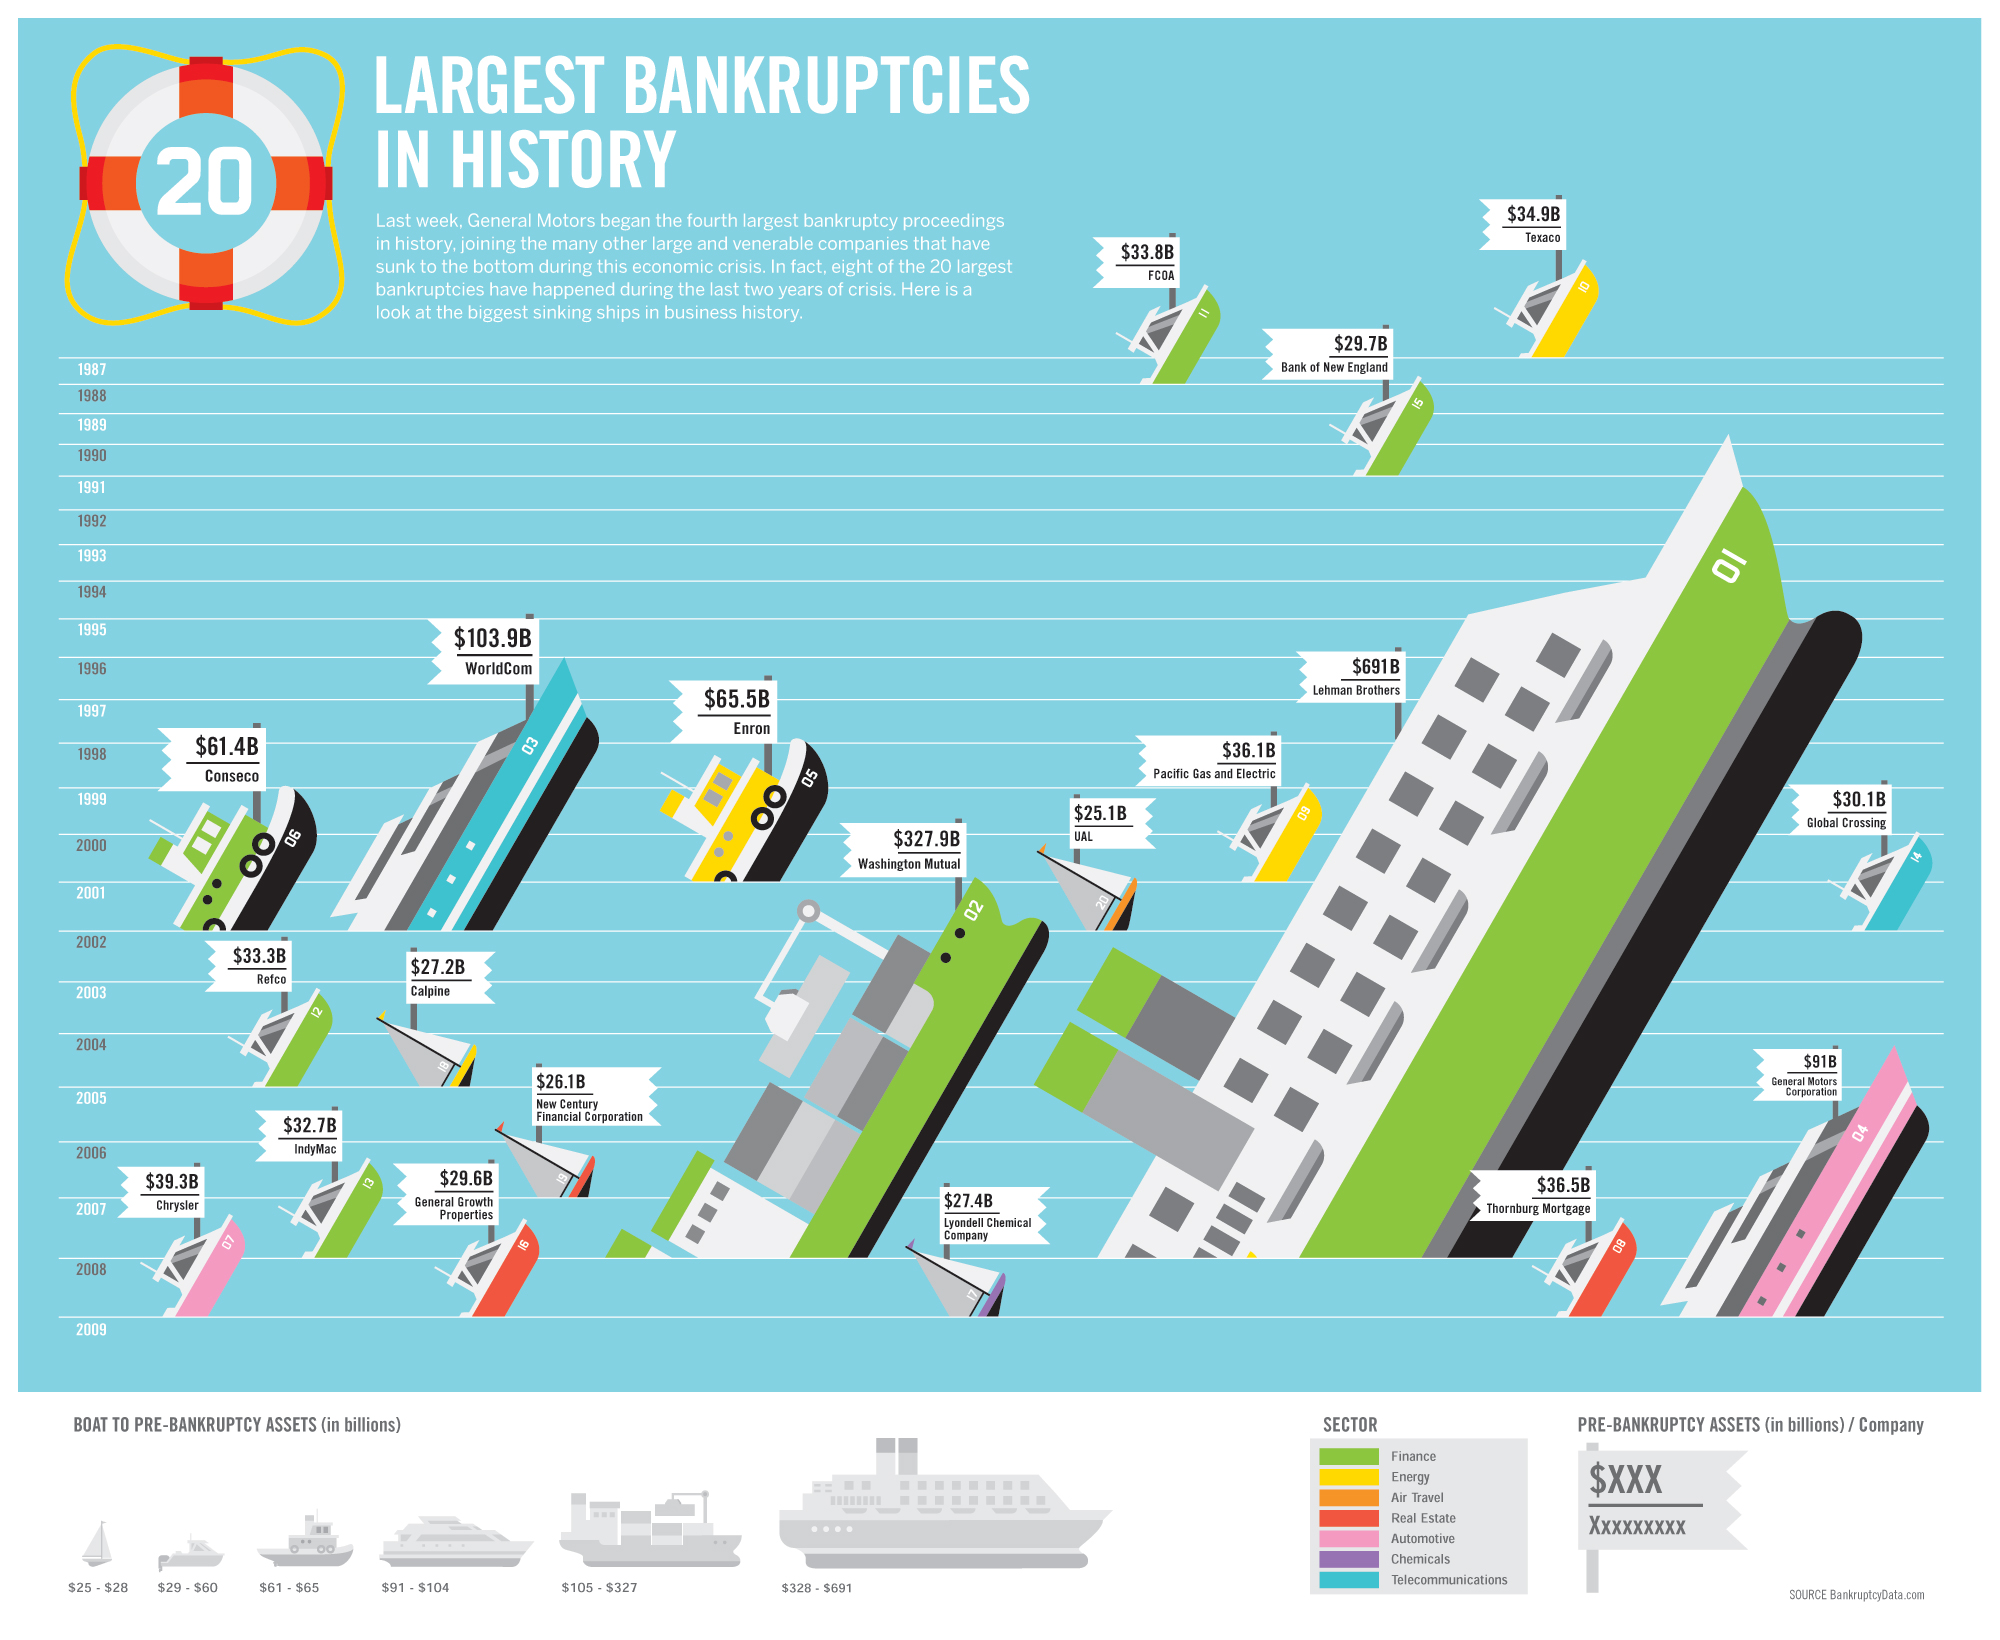 13 Great Infographic Design Images